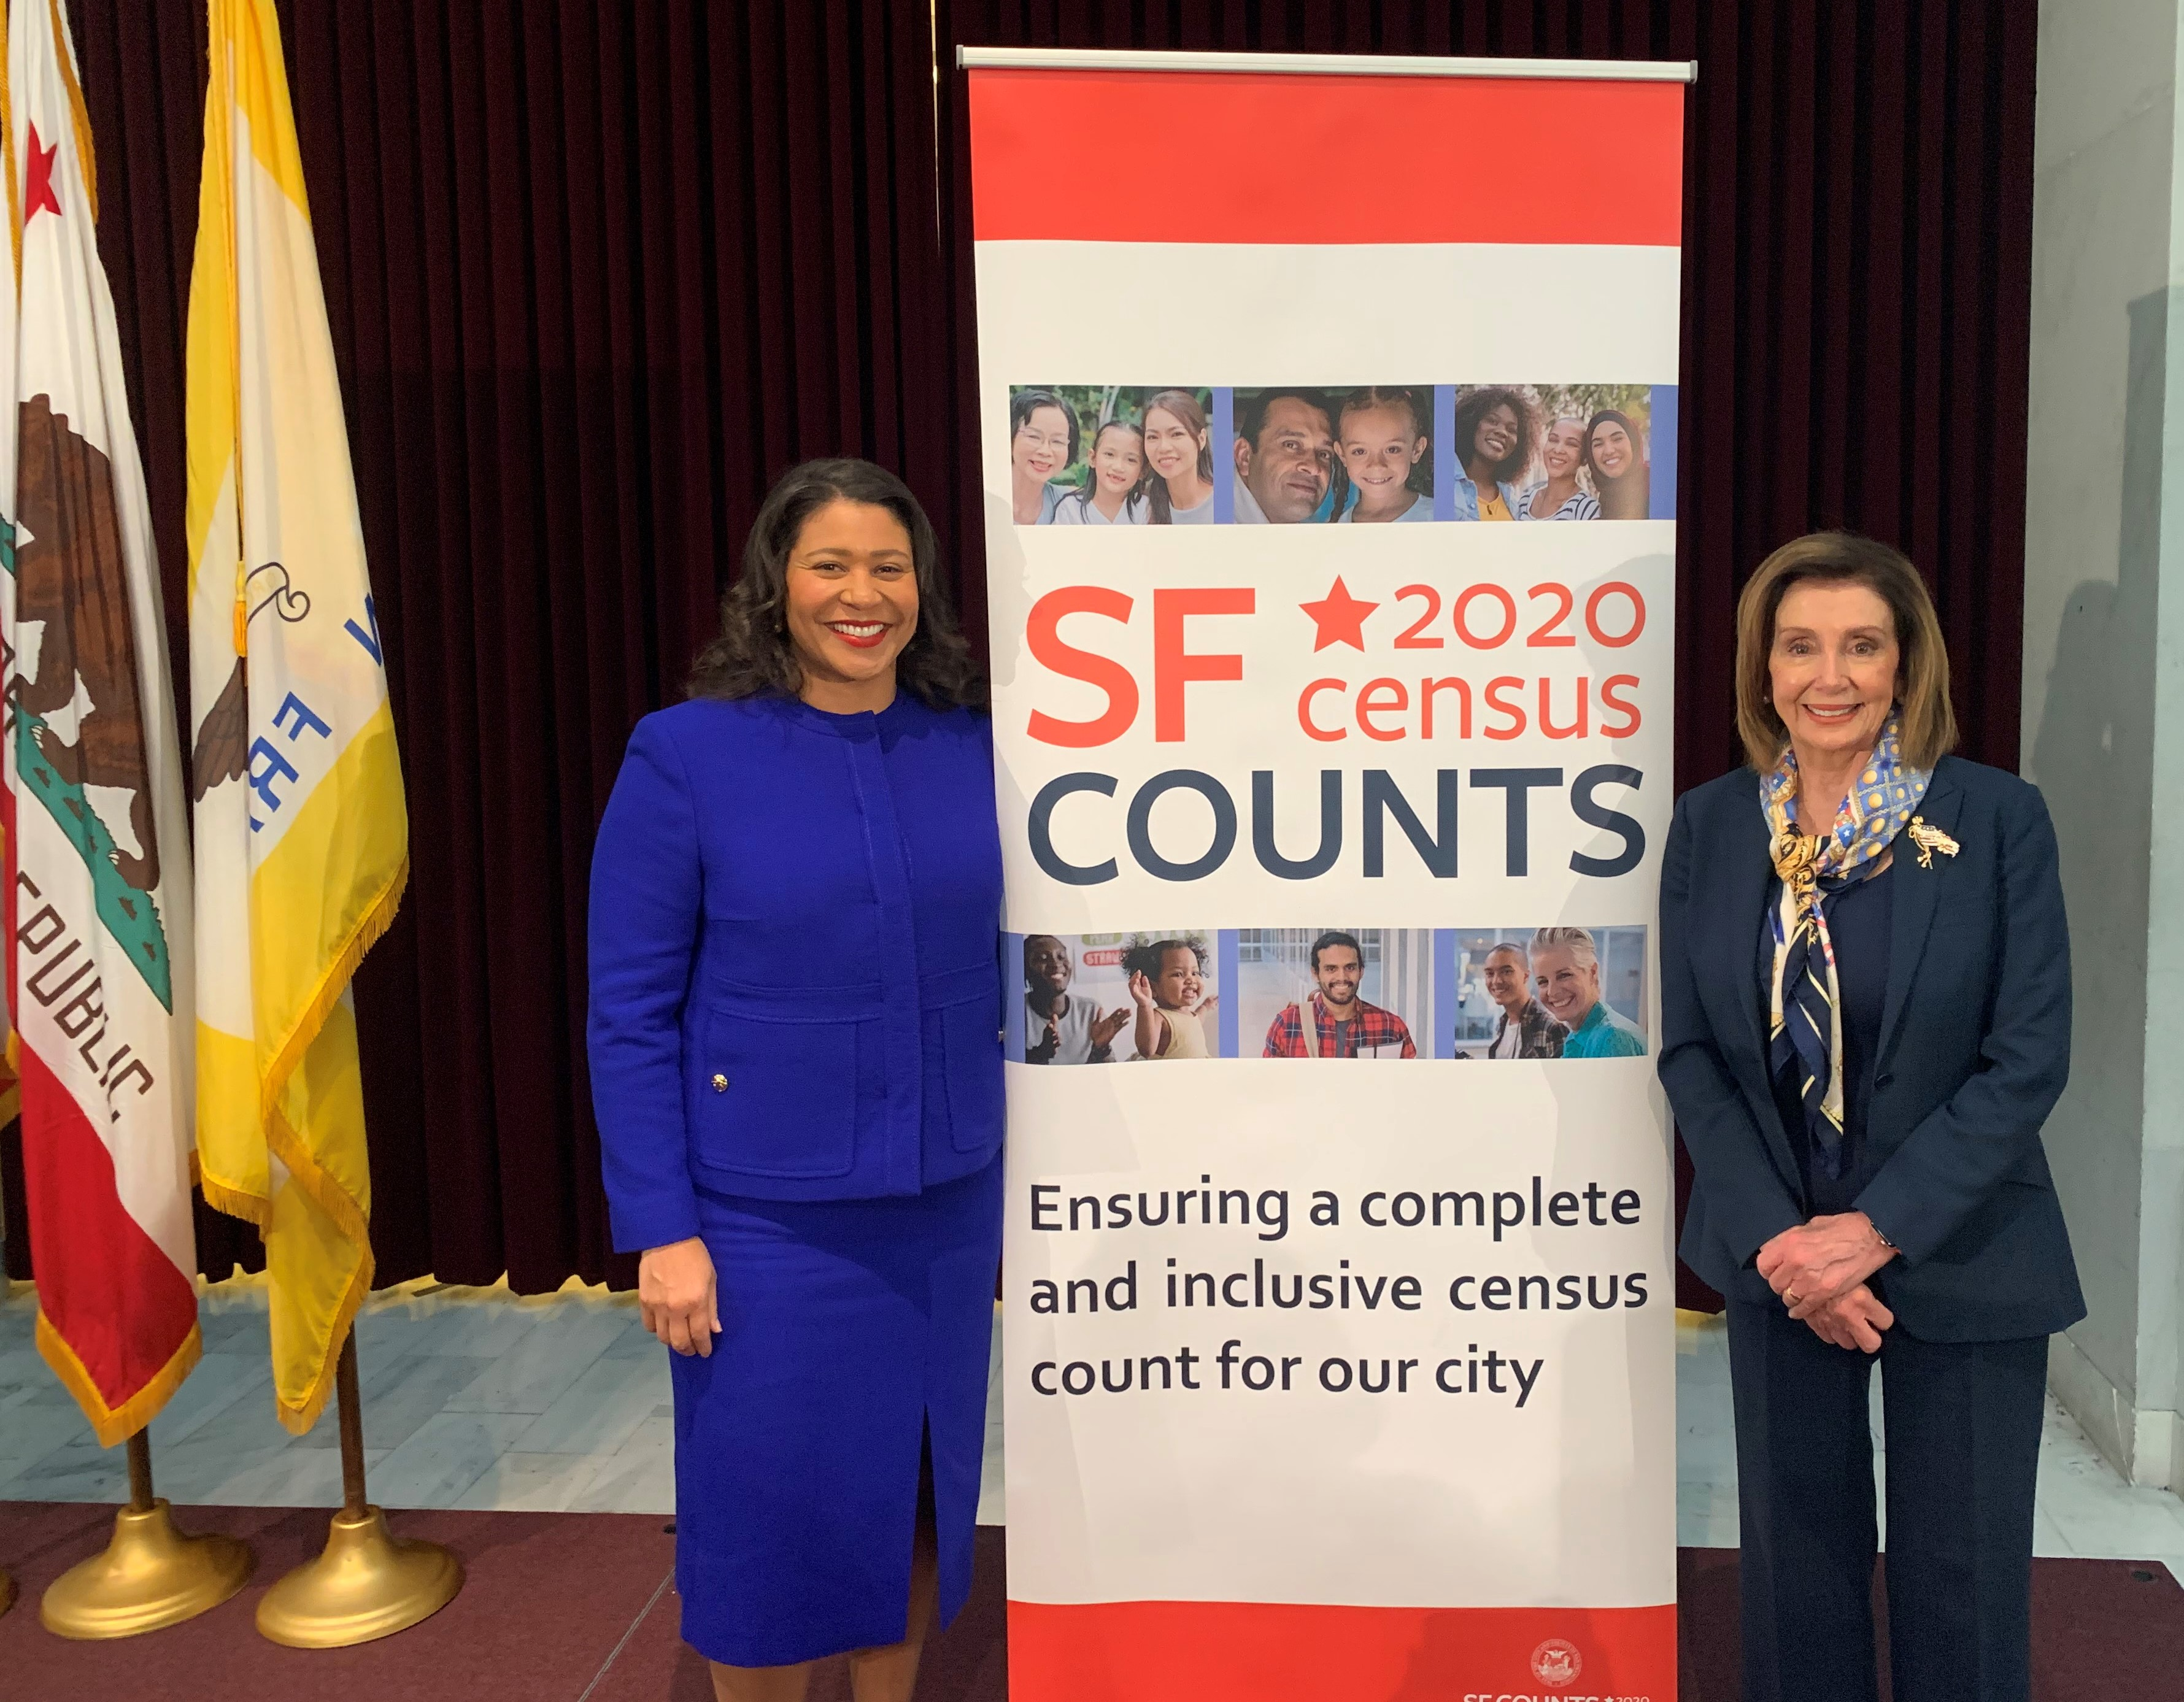 Mayor Breed and Speaker Nancy Pelosi at Census 2020 event